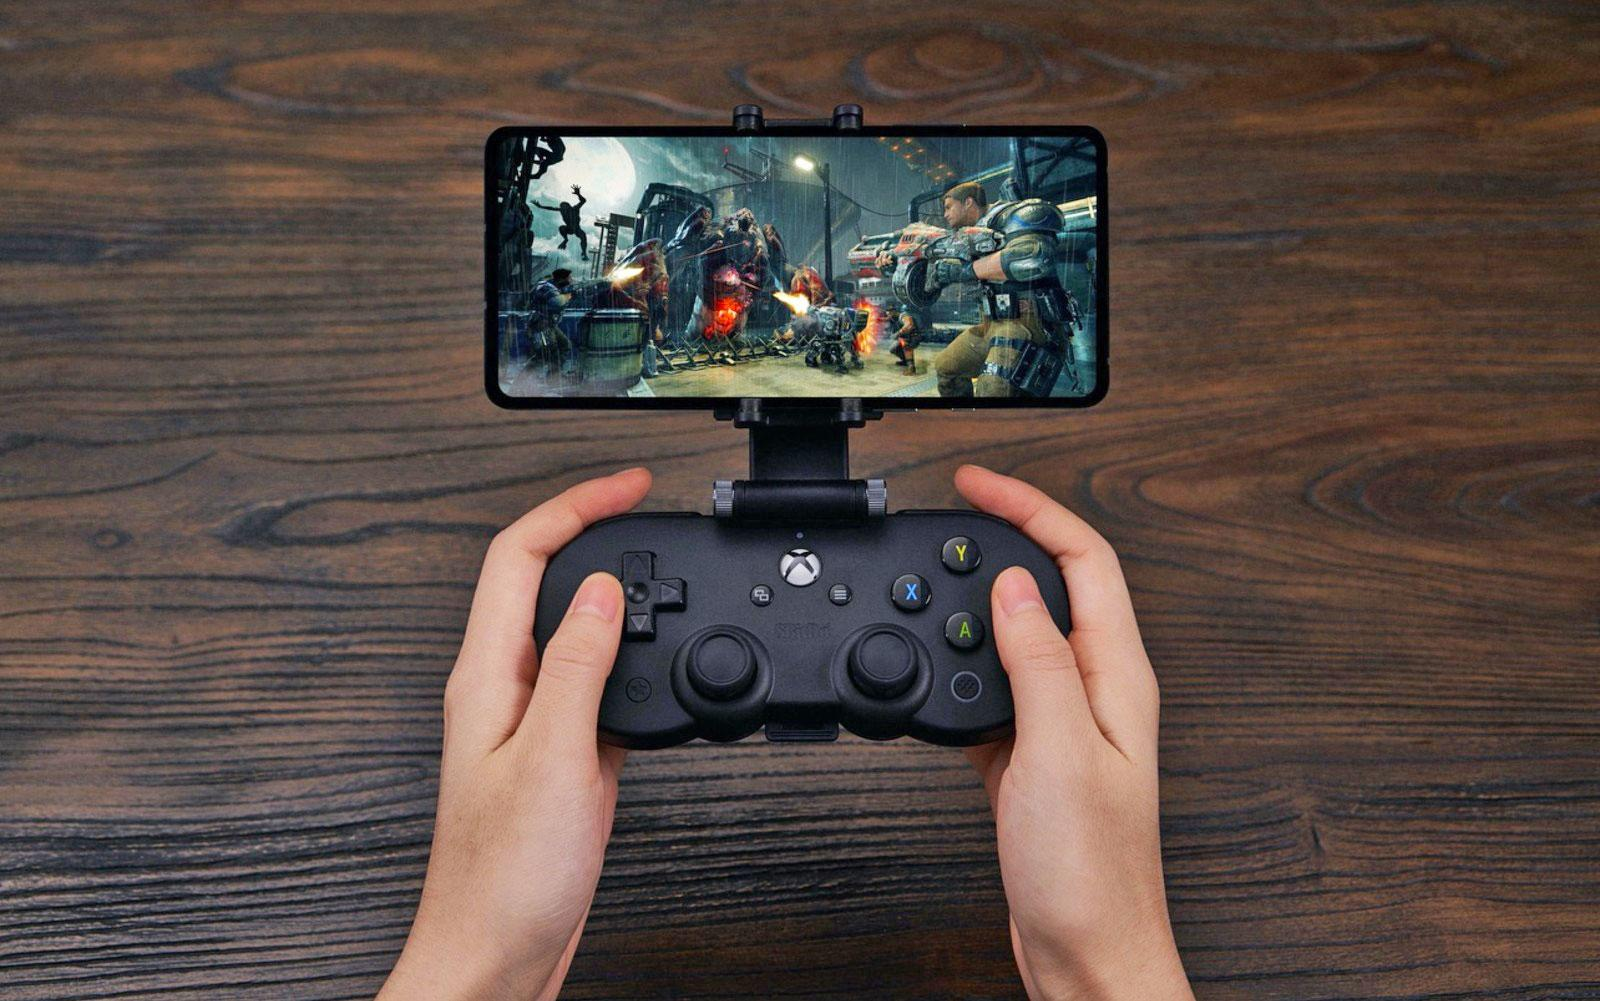 8BitDo is updating one of its Bluetooth gamepads for Project xCloud | Engadget